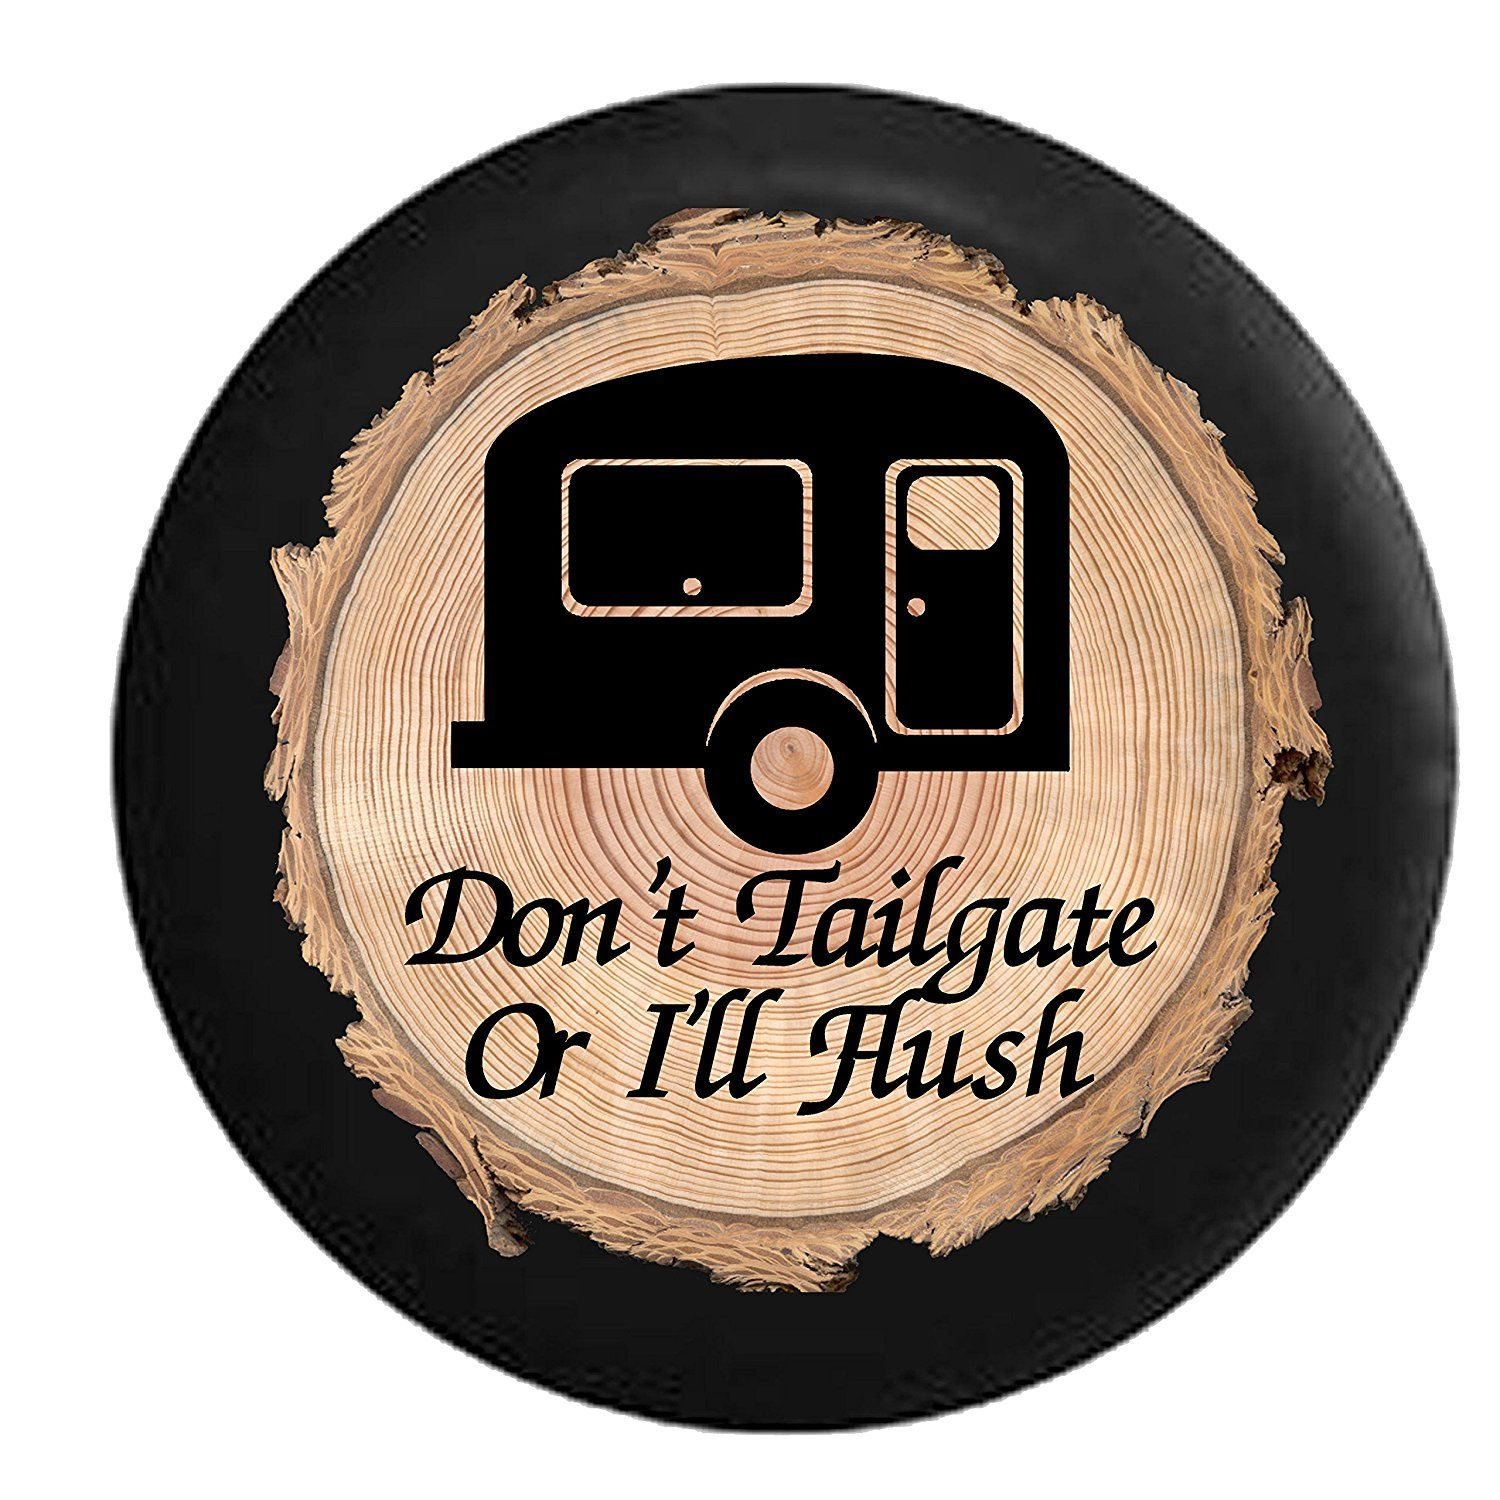 Camper Spare Tire Covers Easily Add Personality To Your Camper Jeep Tire Cover Spare Tire Covers Tire Cover